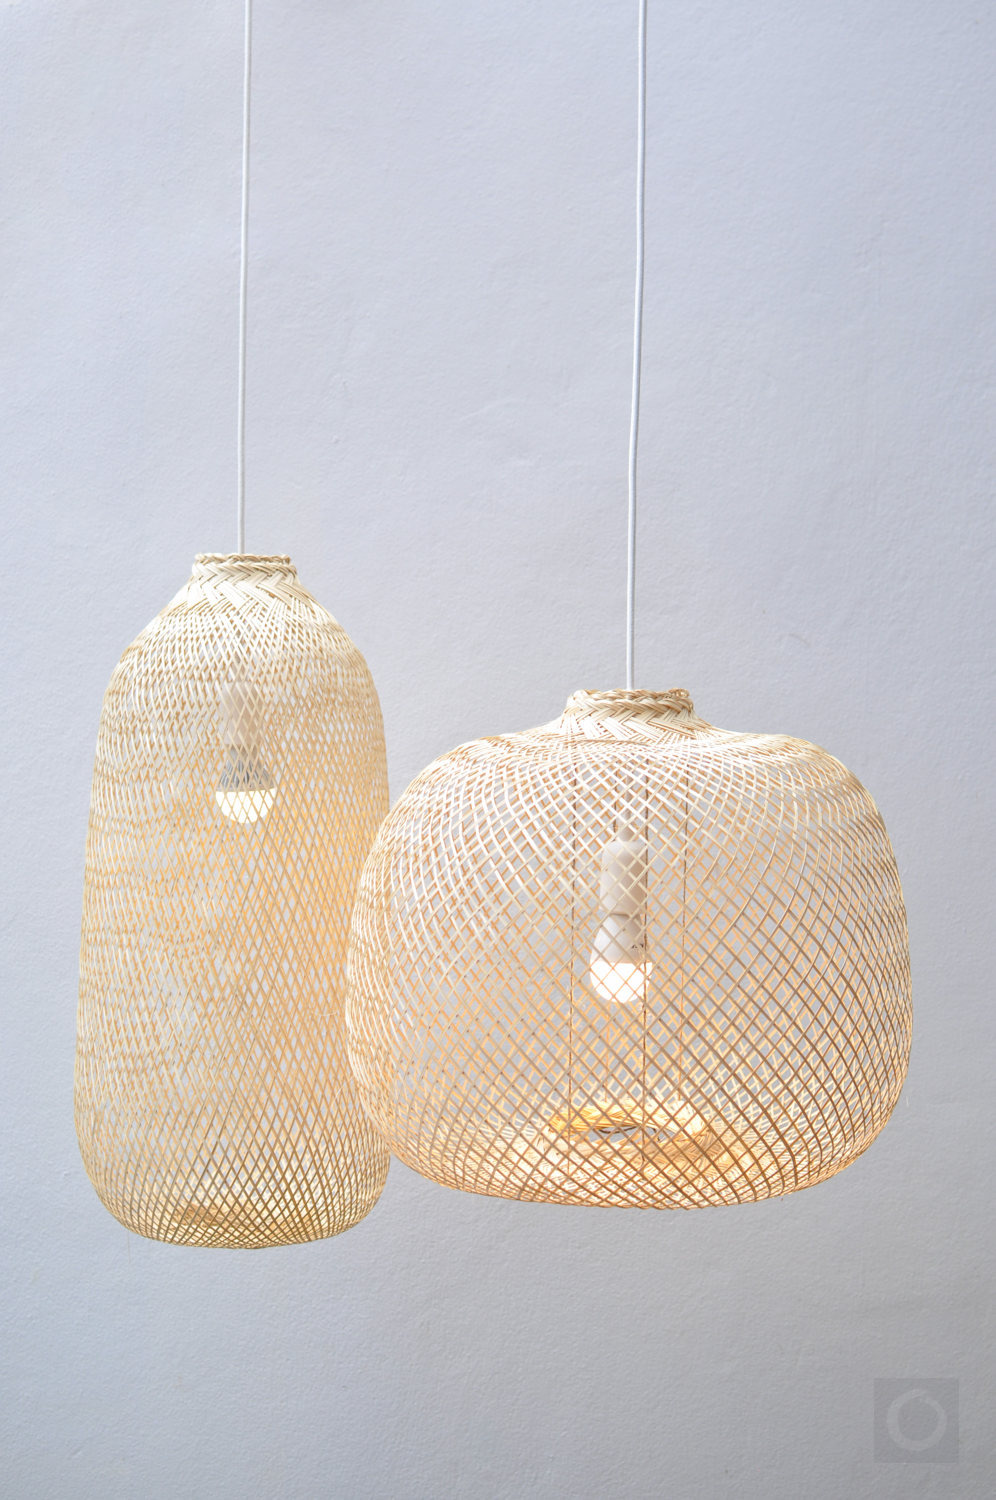 Oblong and over-sized Woven Bamboo Pendant Lights by Oriental Bazar on Etsy. - Prices start at $29. Made in Thailand.